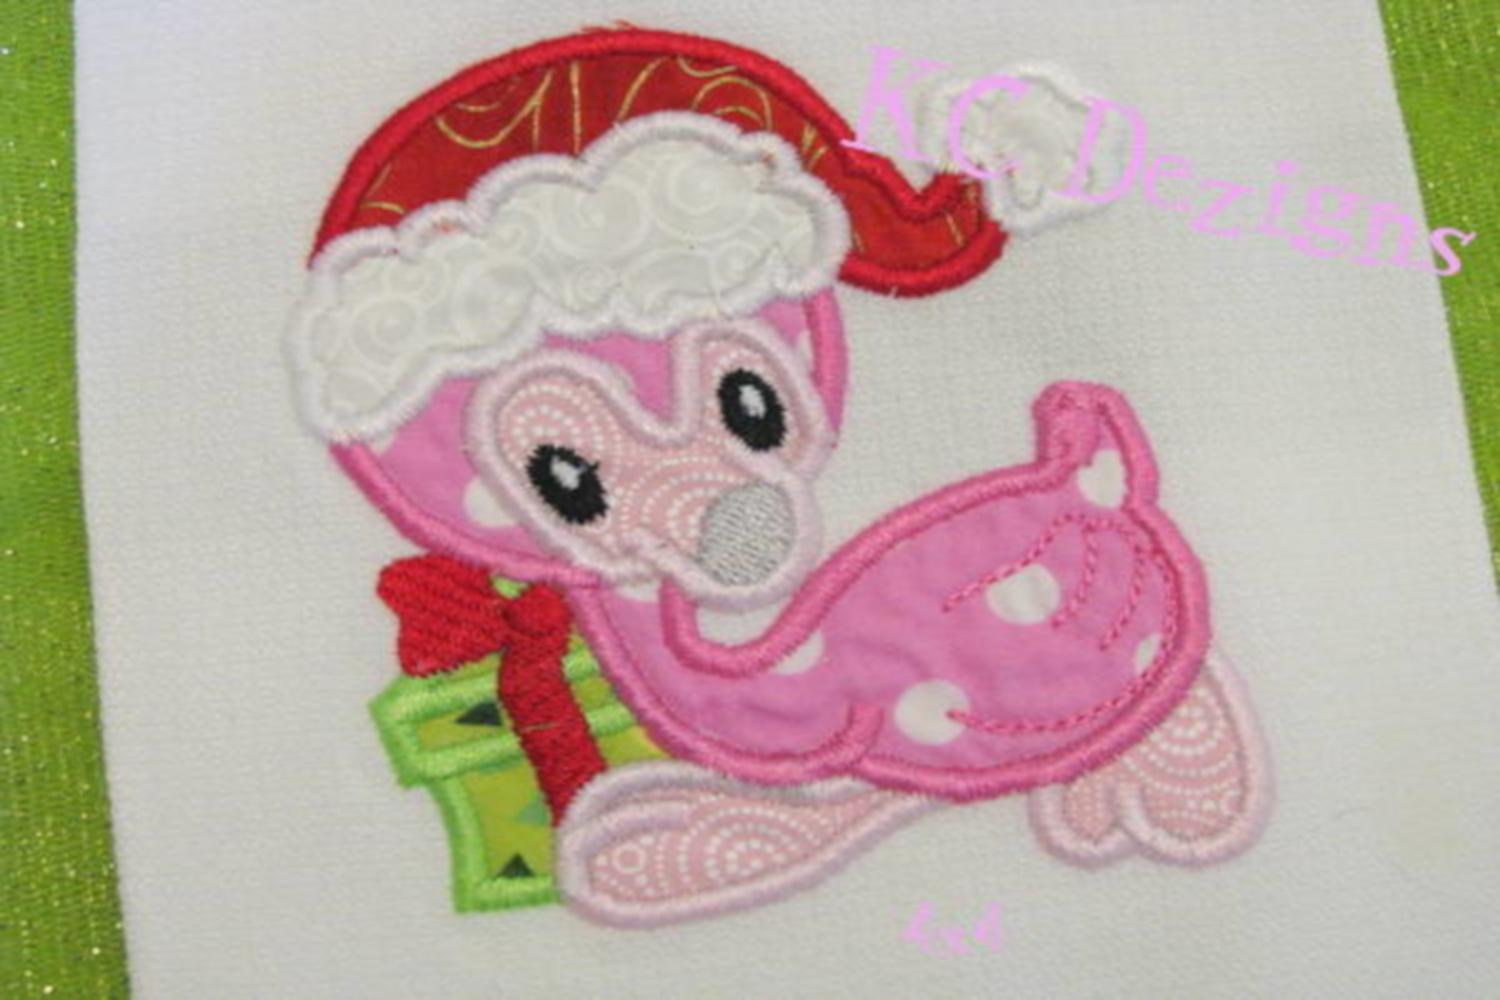 Christmas Baby Flamingo Machine Applique Embroidery Design example image 3